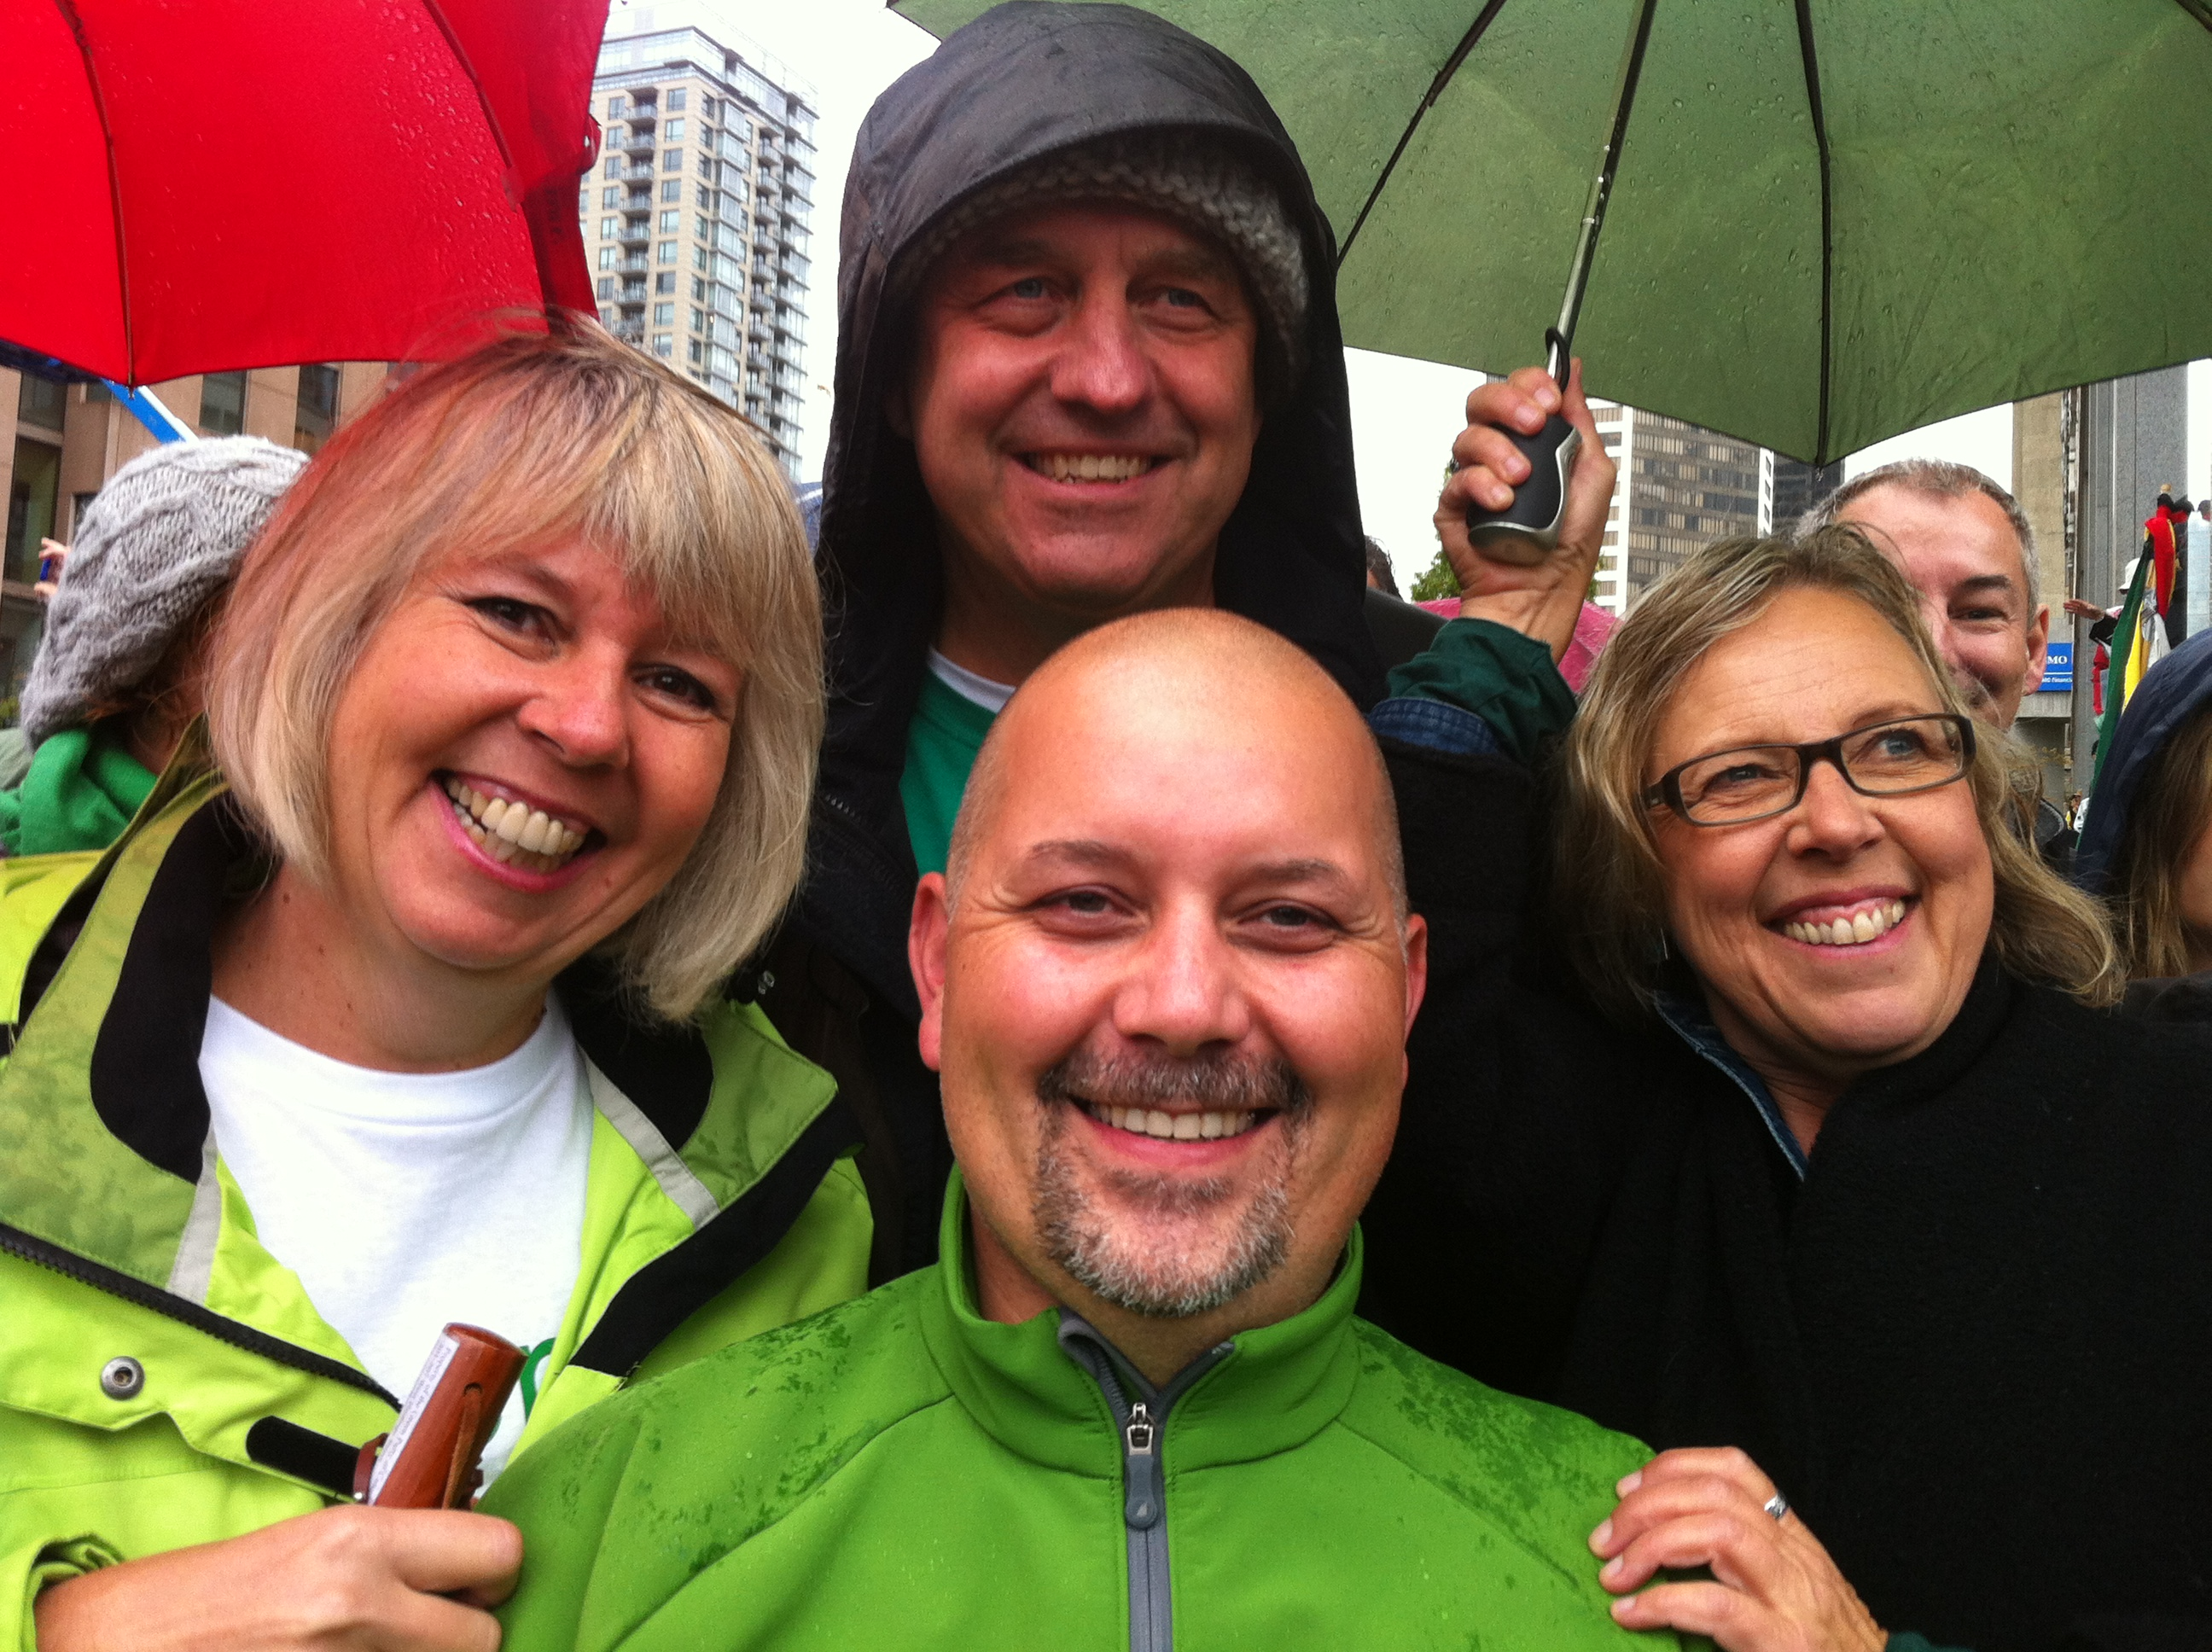 Adam Olsen, Andrew Weaver, Adriane Carr and Elizabeth May at the Walk for Reconciliation in Vancouver 2013